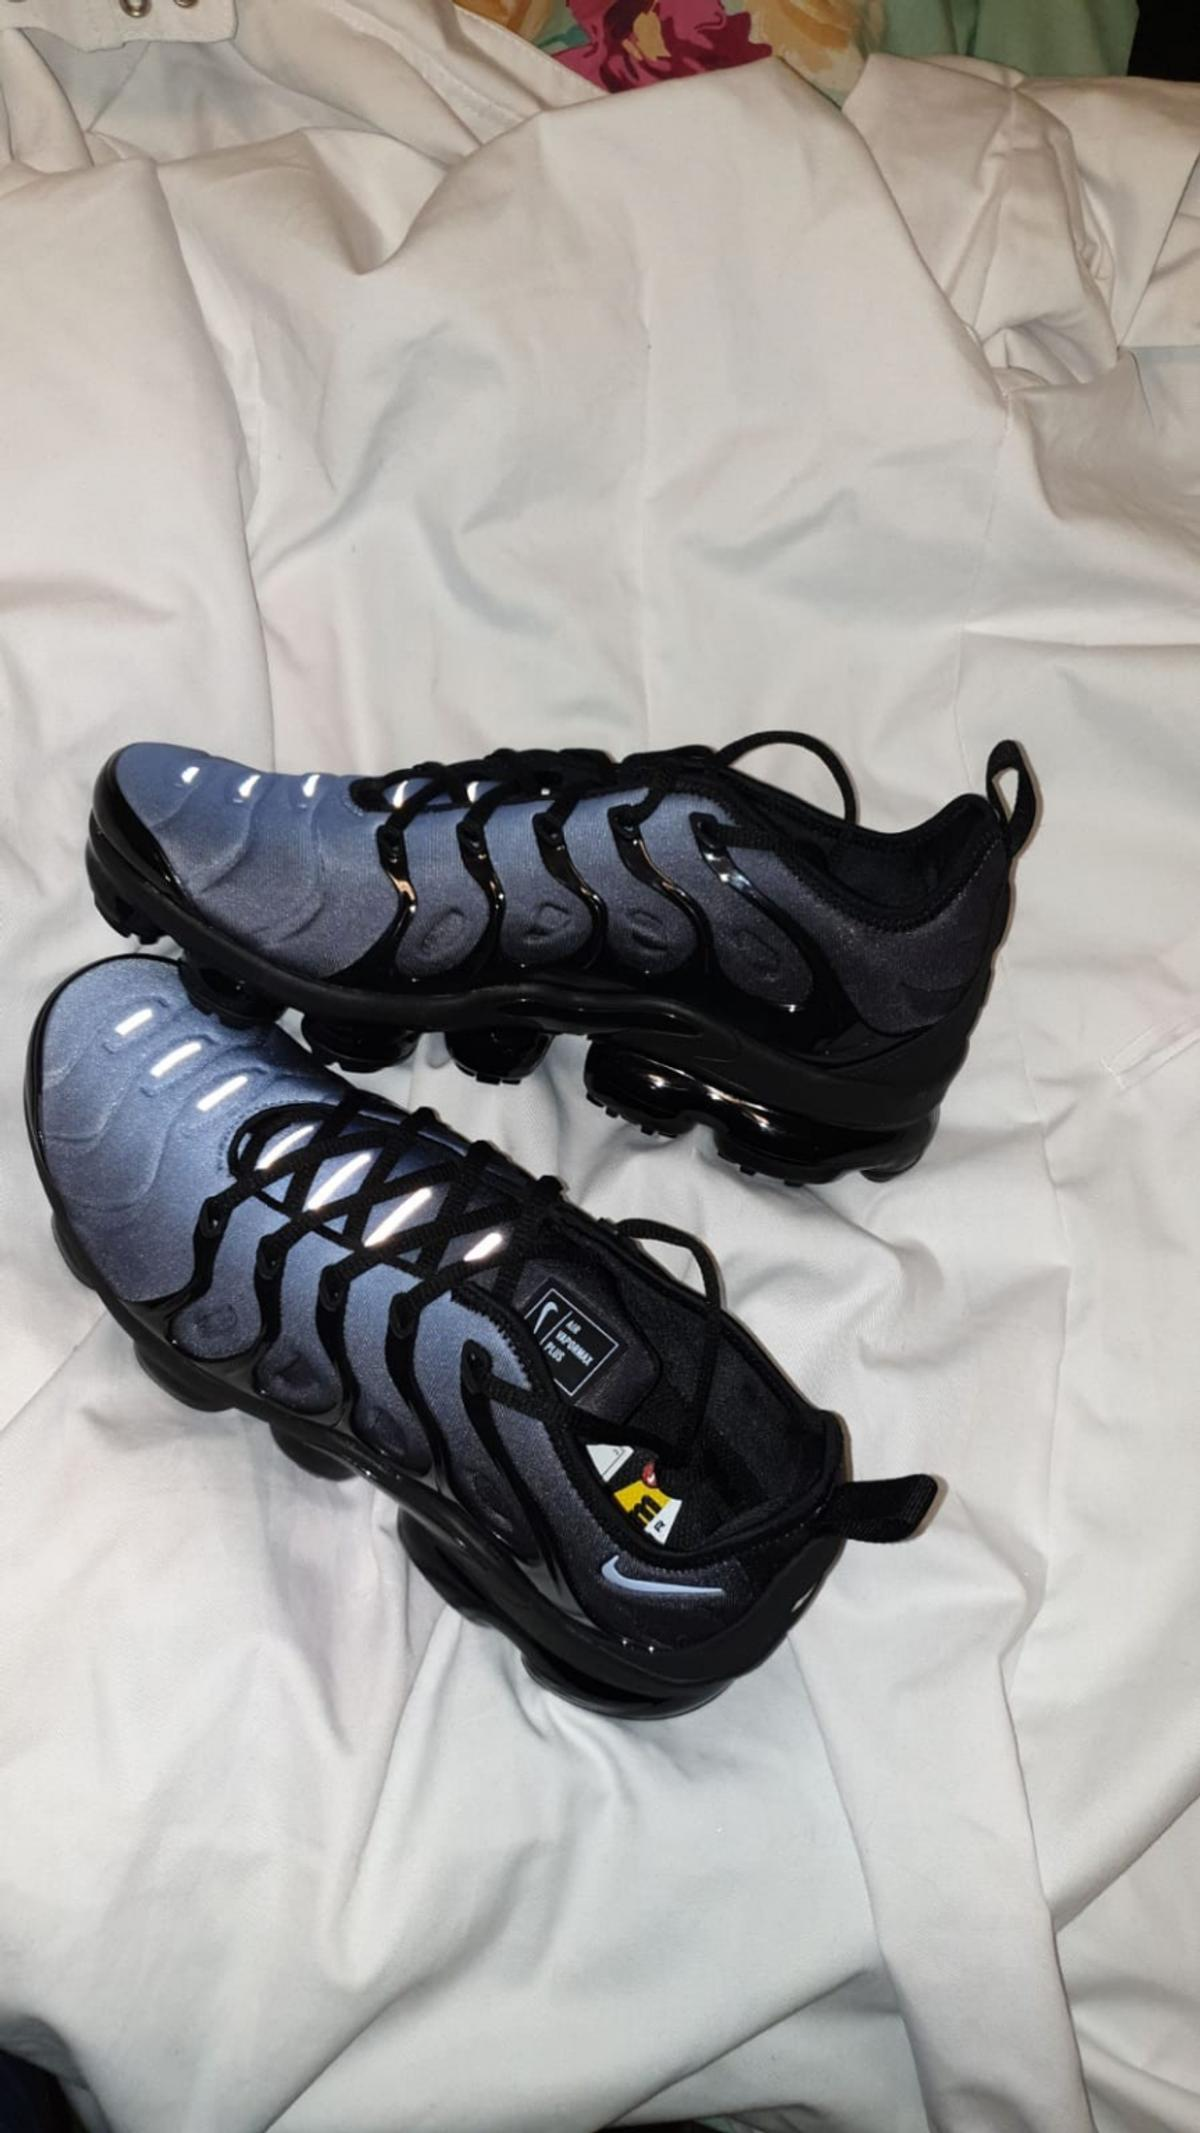 new product 9c060 83711 nike vapormax plus black and blue in M23 Manchester for ...